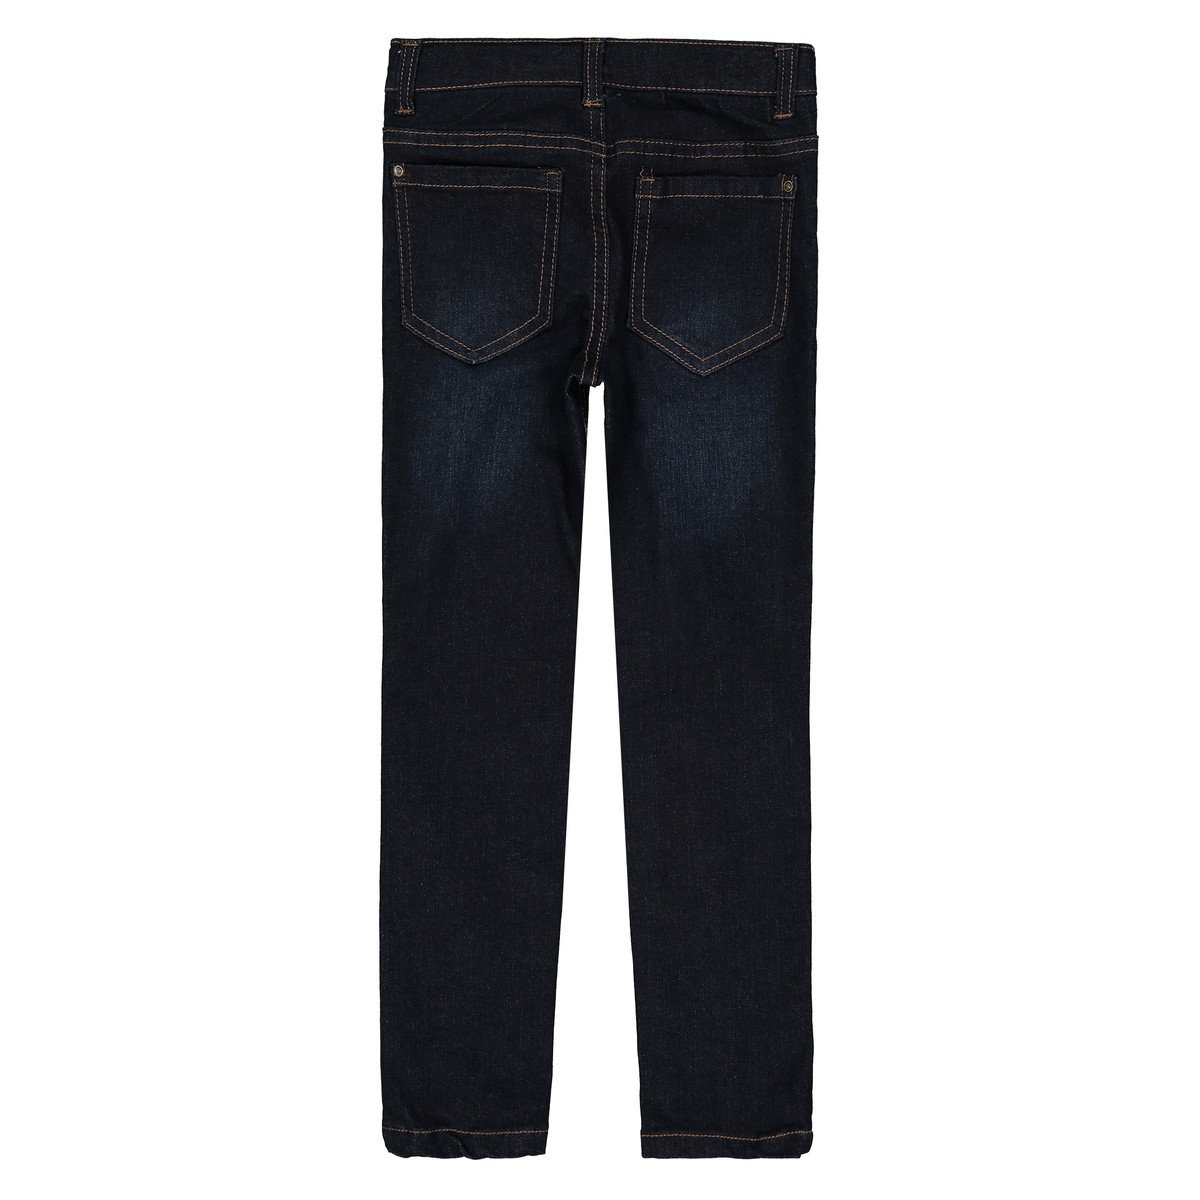 La Redoute Collections Big Boys Slim Fit Jeans for Fuller Fit 3-12 Years Blue Size 6 Years 44 in.